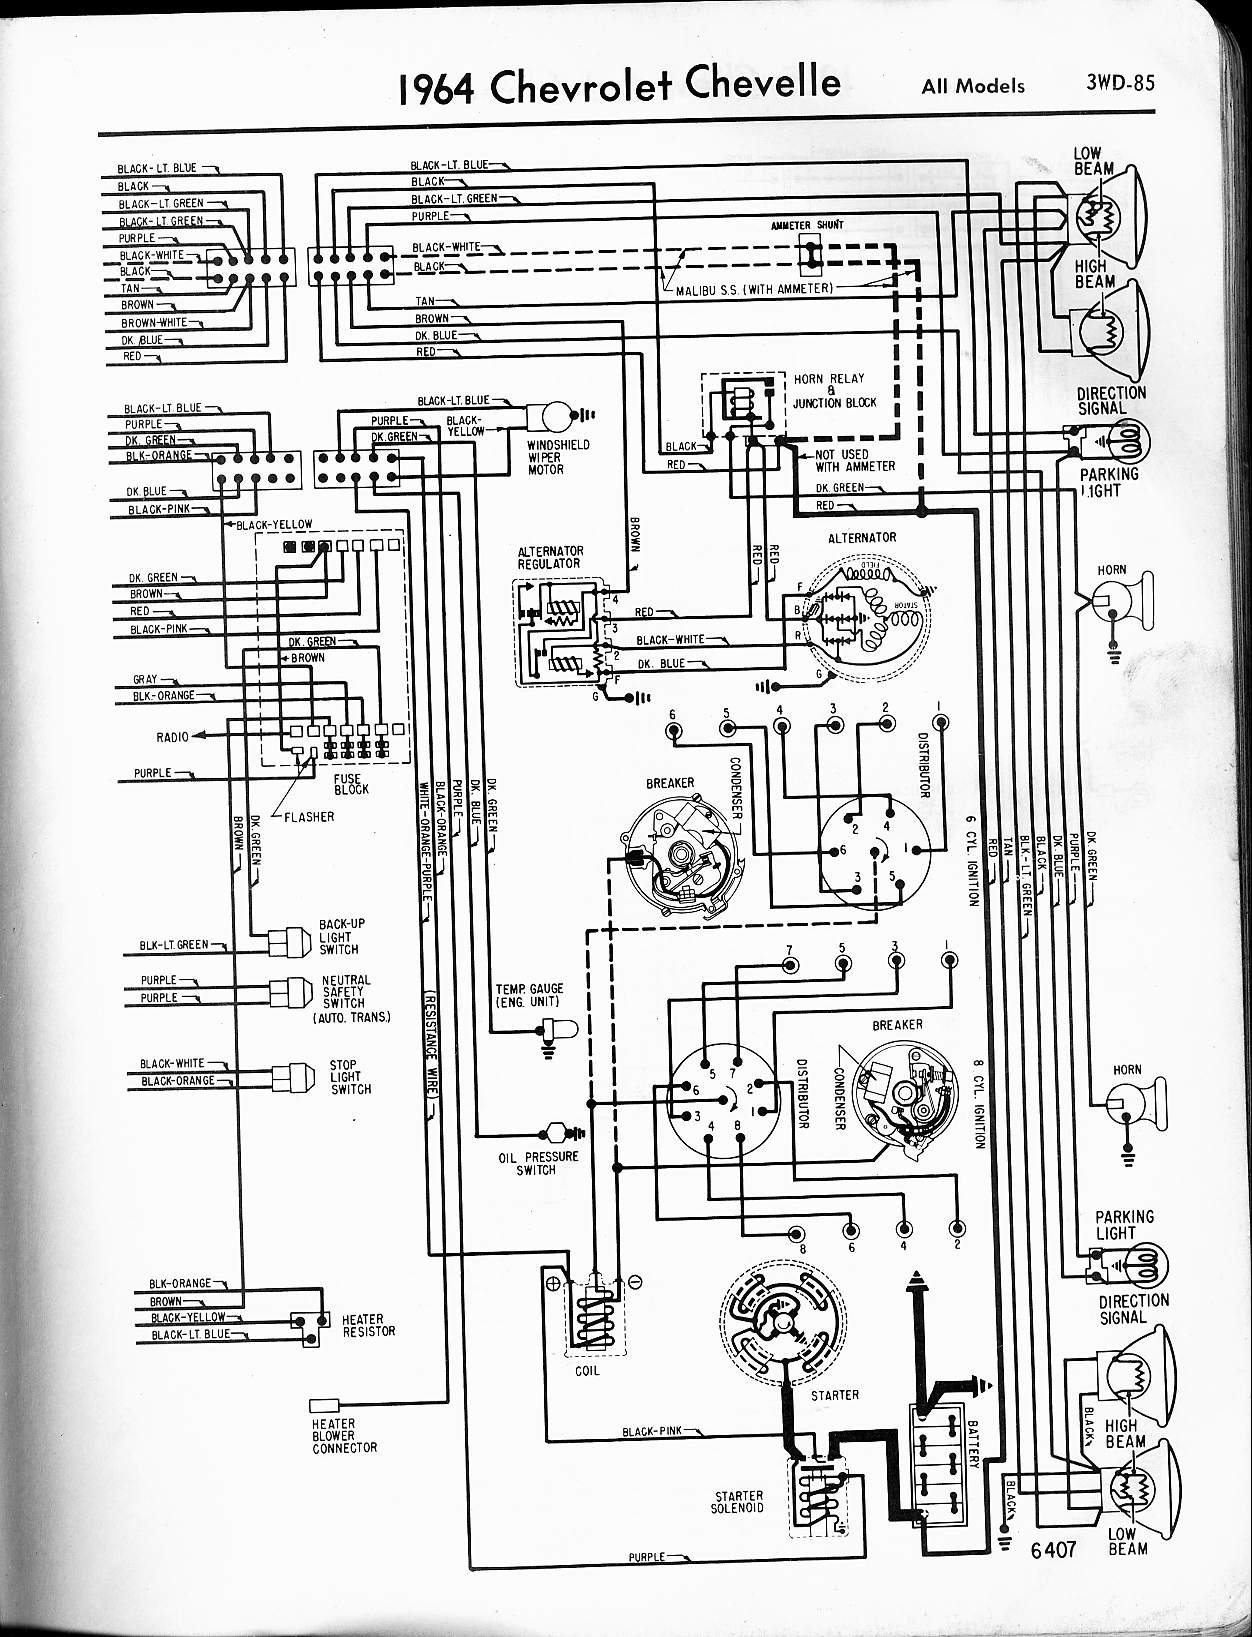 1970 chevelle dash wiring diagram on 69 mustang horn diagram wire rh linxglobal co 1970 Chevelle Heater AC Wiring Diagram 68 Chevelle Wiring Diagram